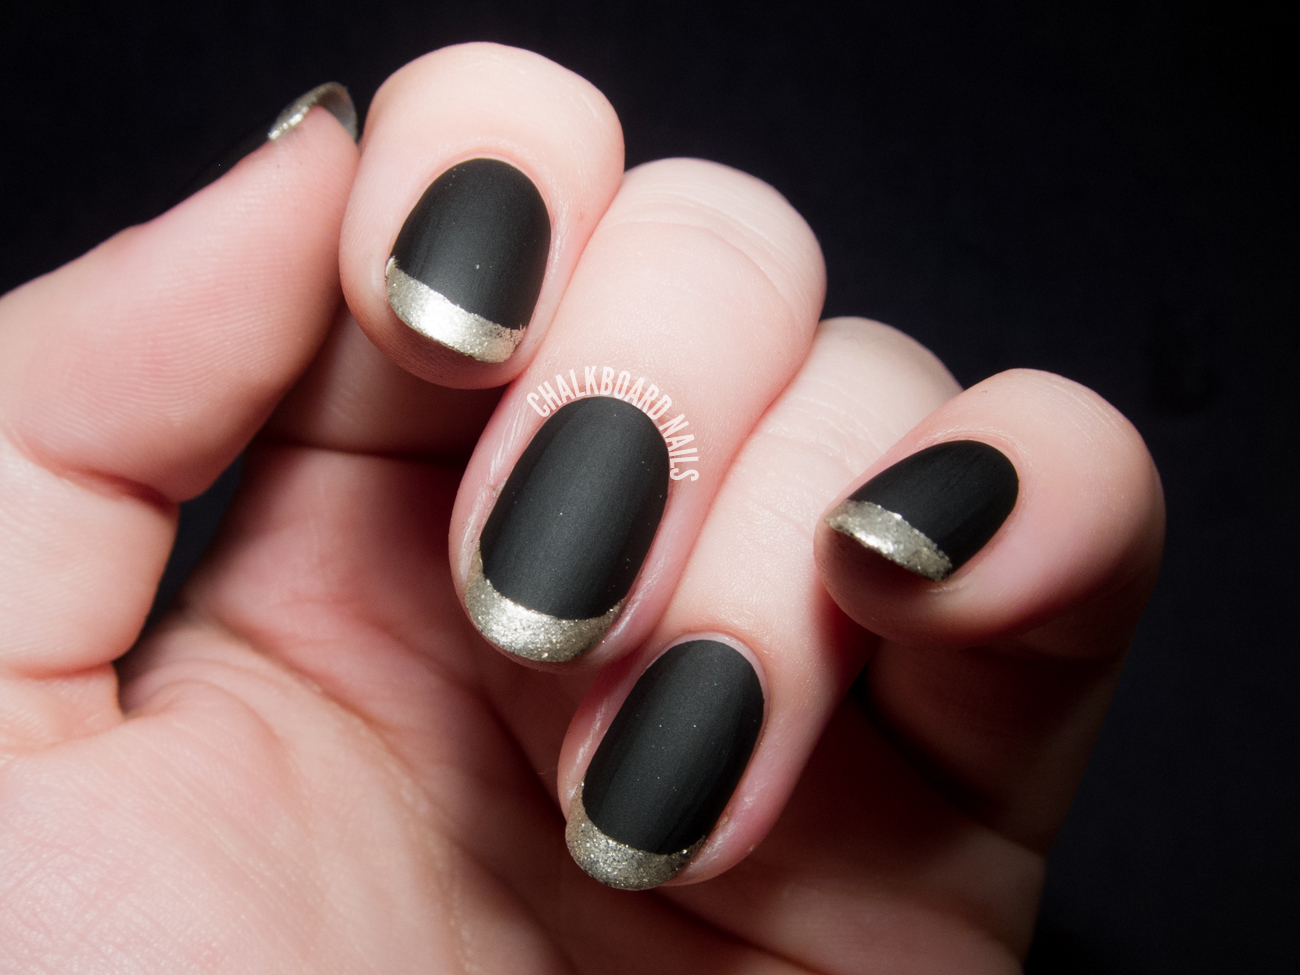 Matte metallic French tips by @chalkboardnails